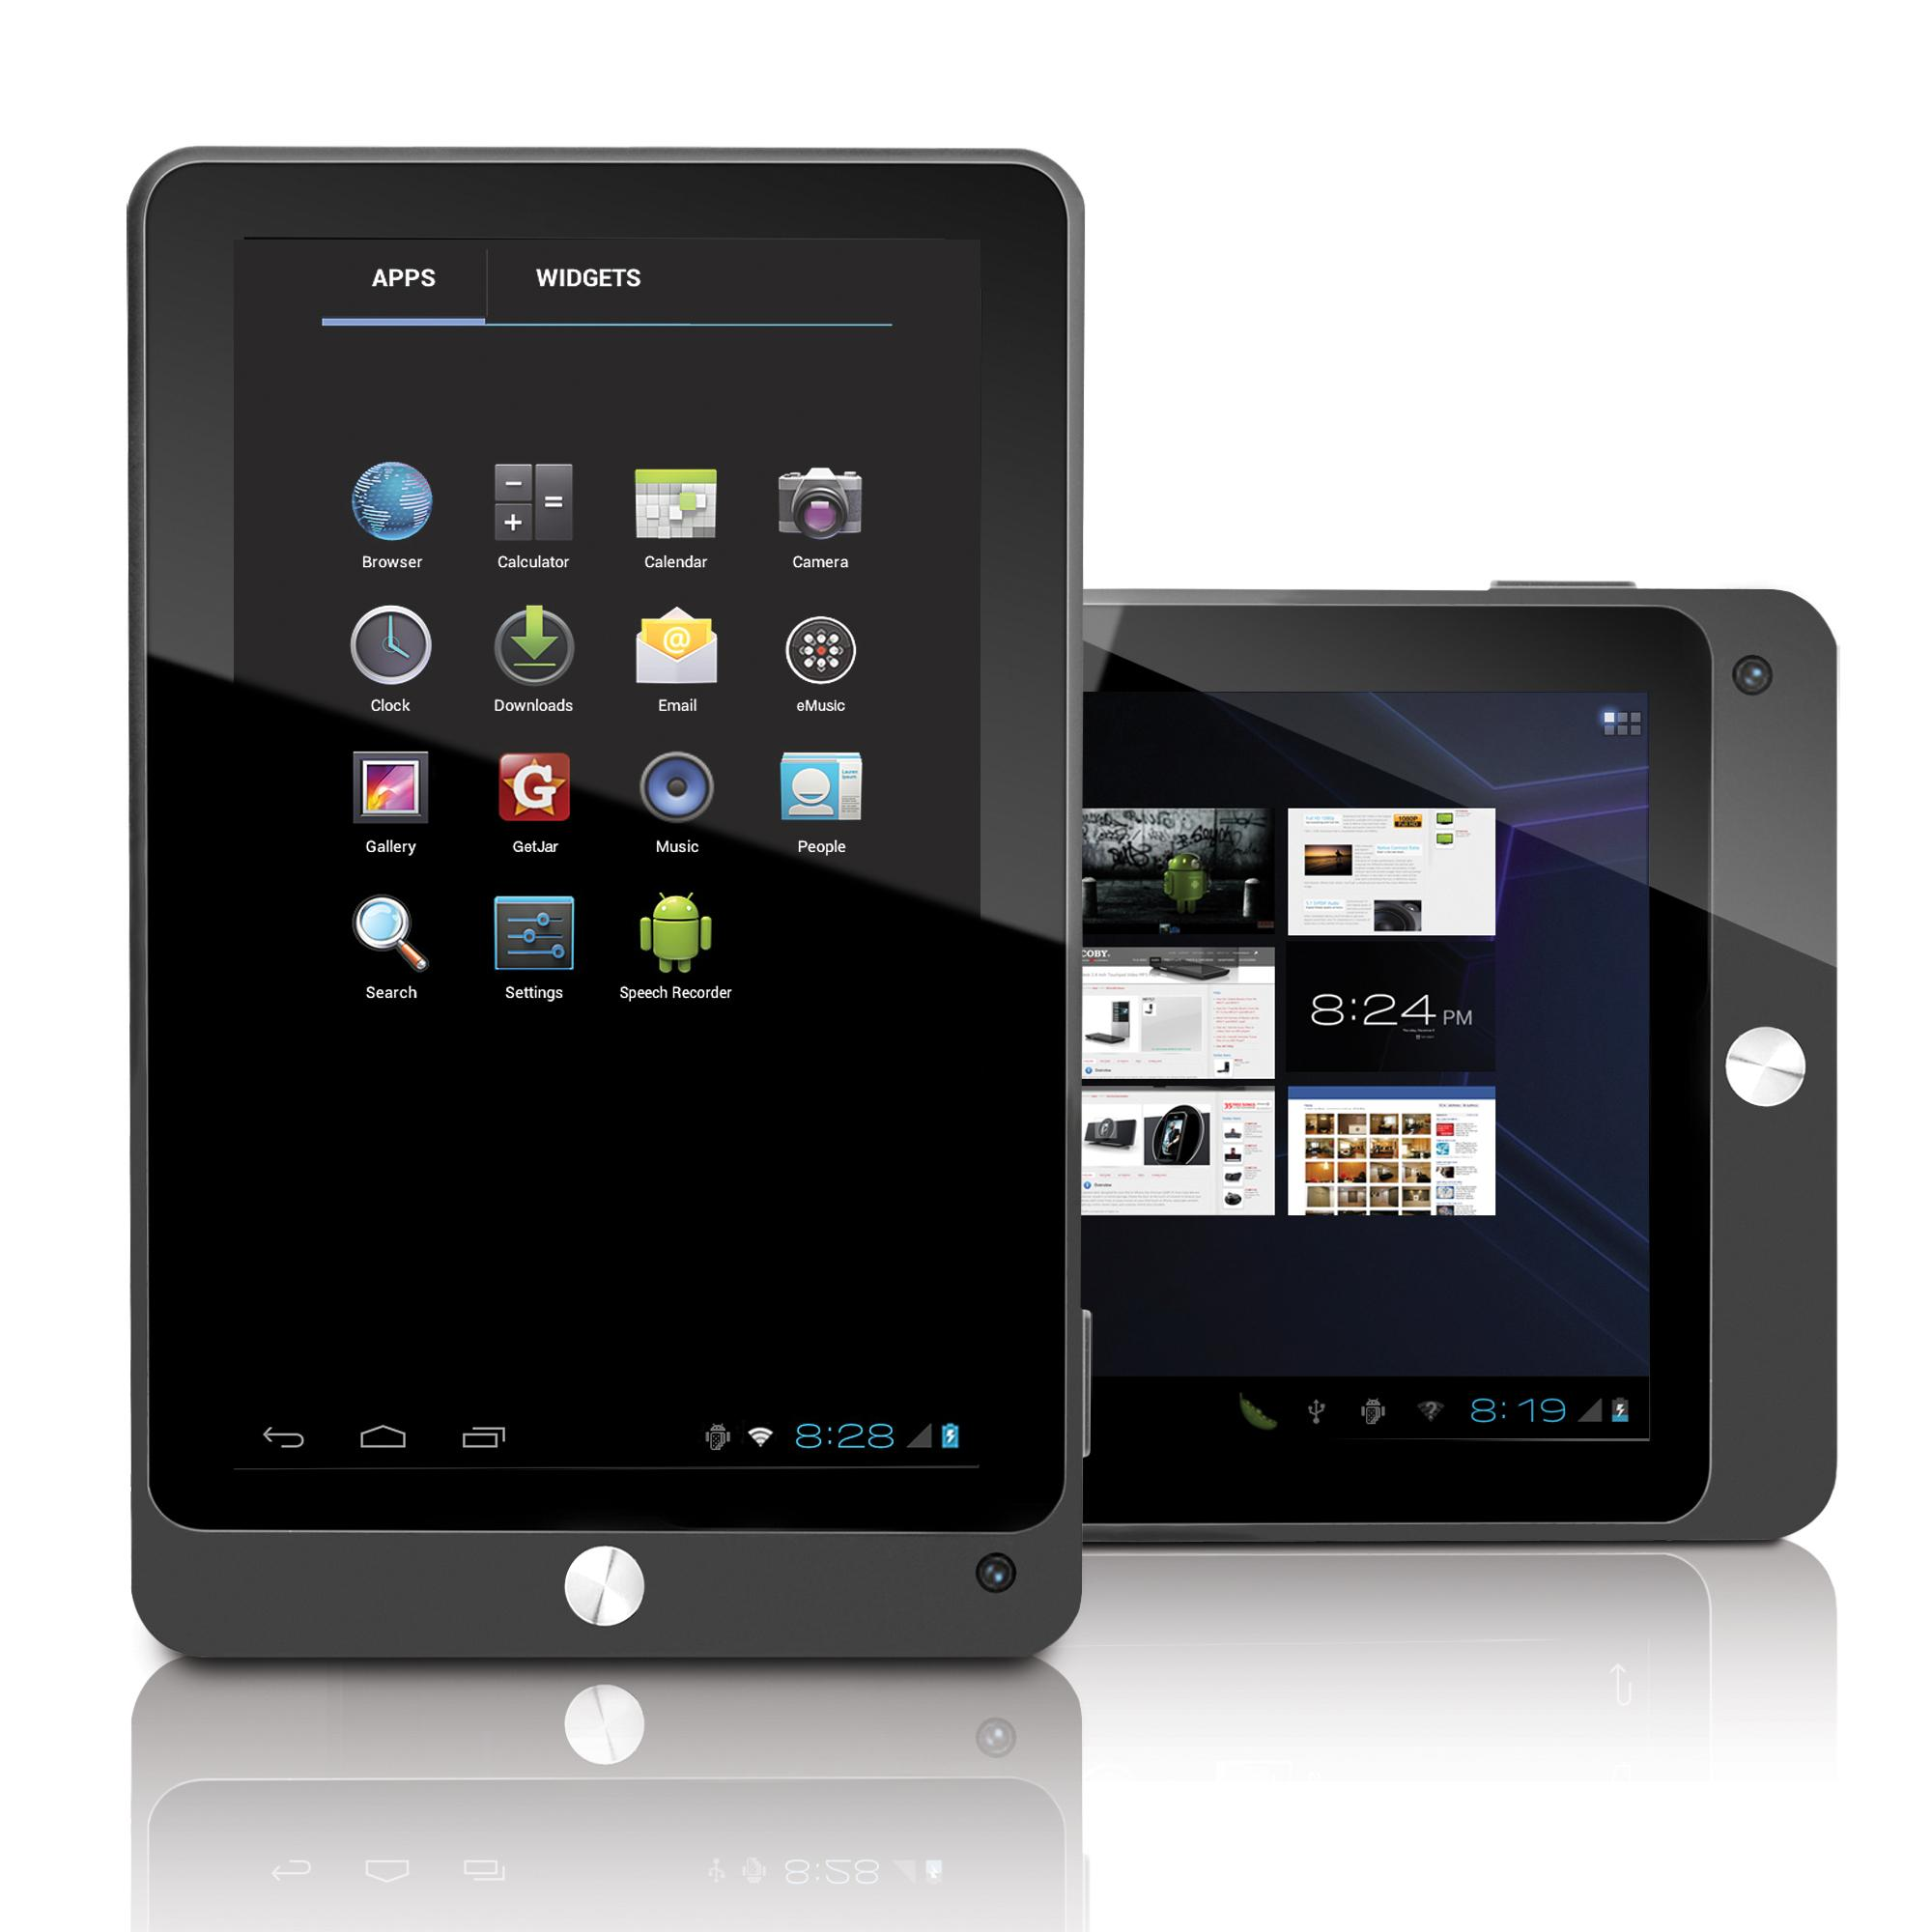 Tablet Coby MID con Android 4.0 ICS